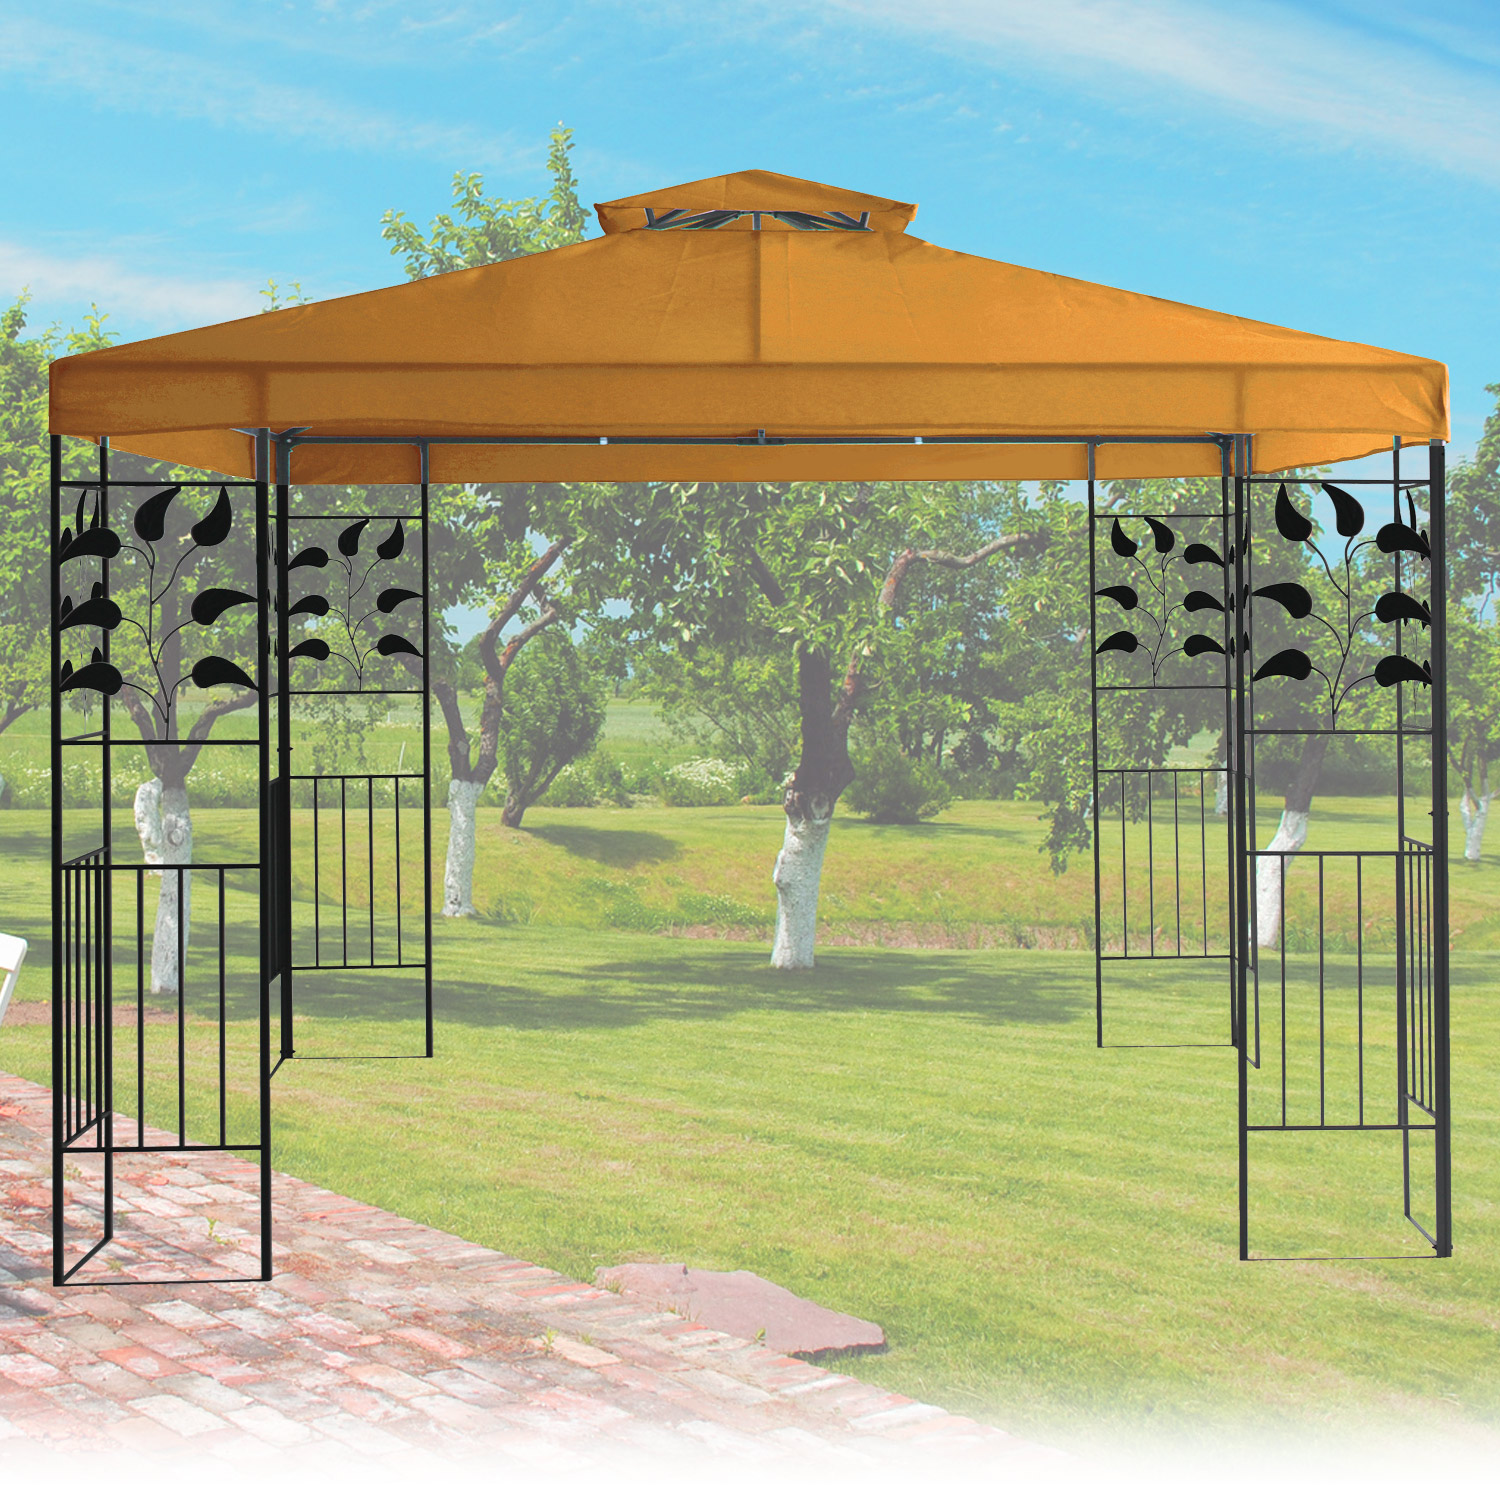 metall gartenpavillon 3x3 gazebo mit entl ftungsfunktion garten pavillon orange. Black Bedroom Furniture Sets. Home Design Ideas